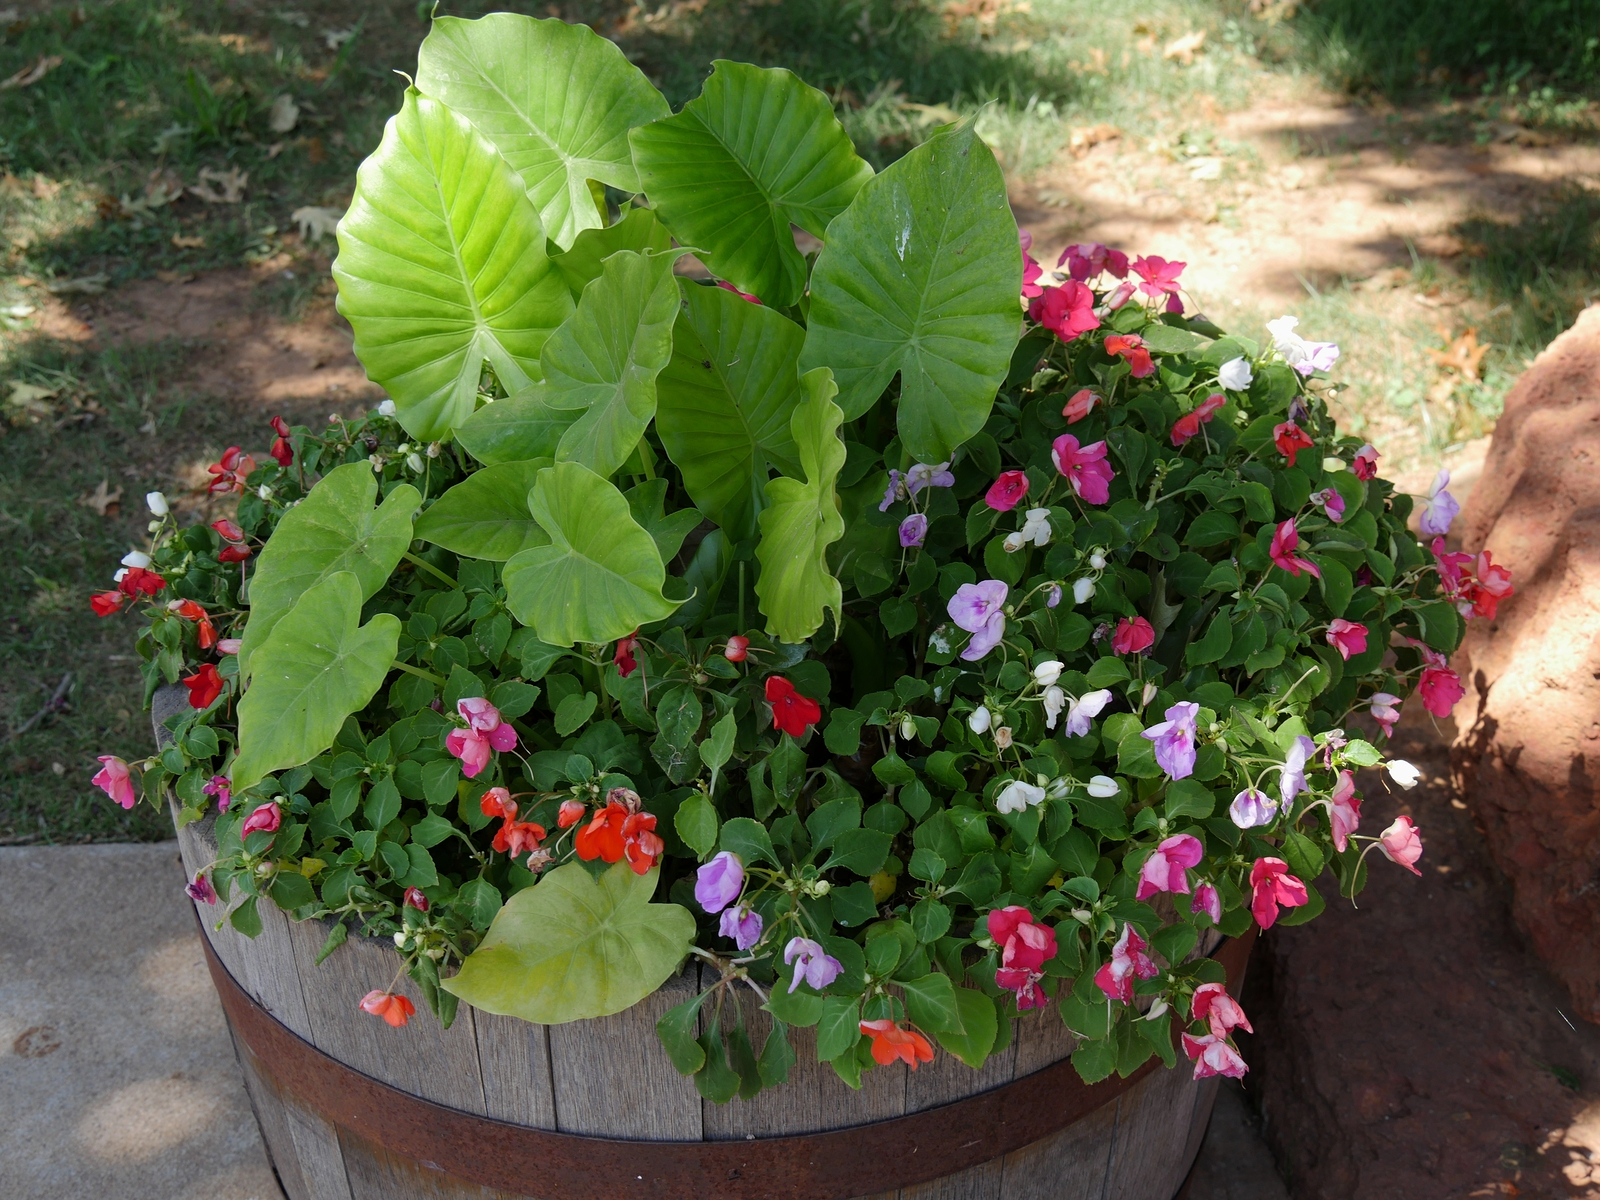 Big wooden pot filled with Primroses of different colors  and elephant ears